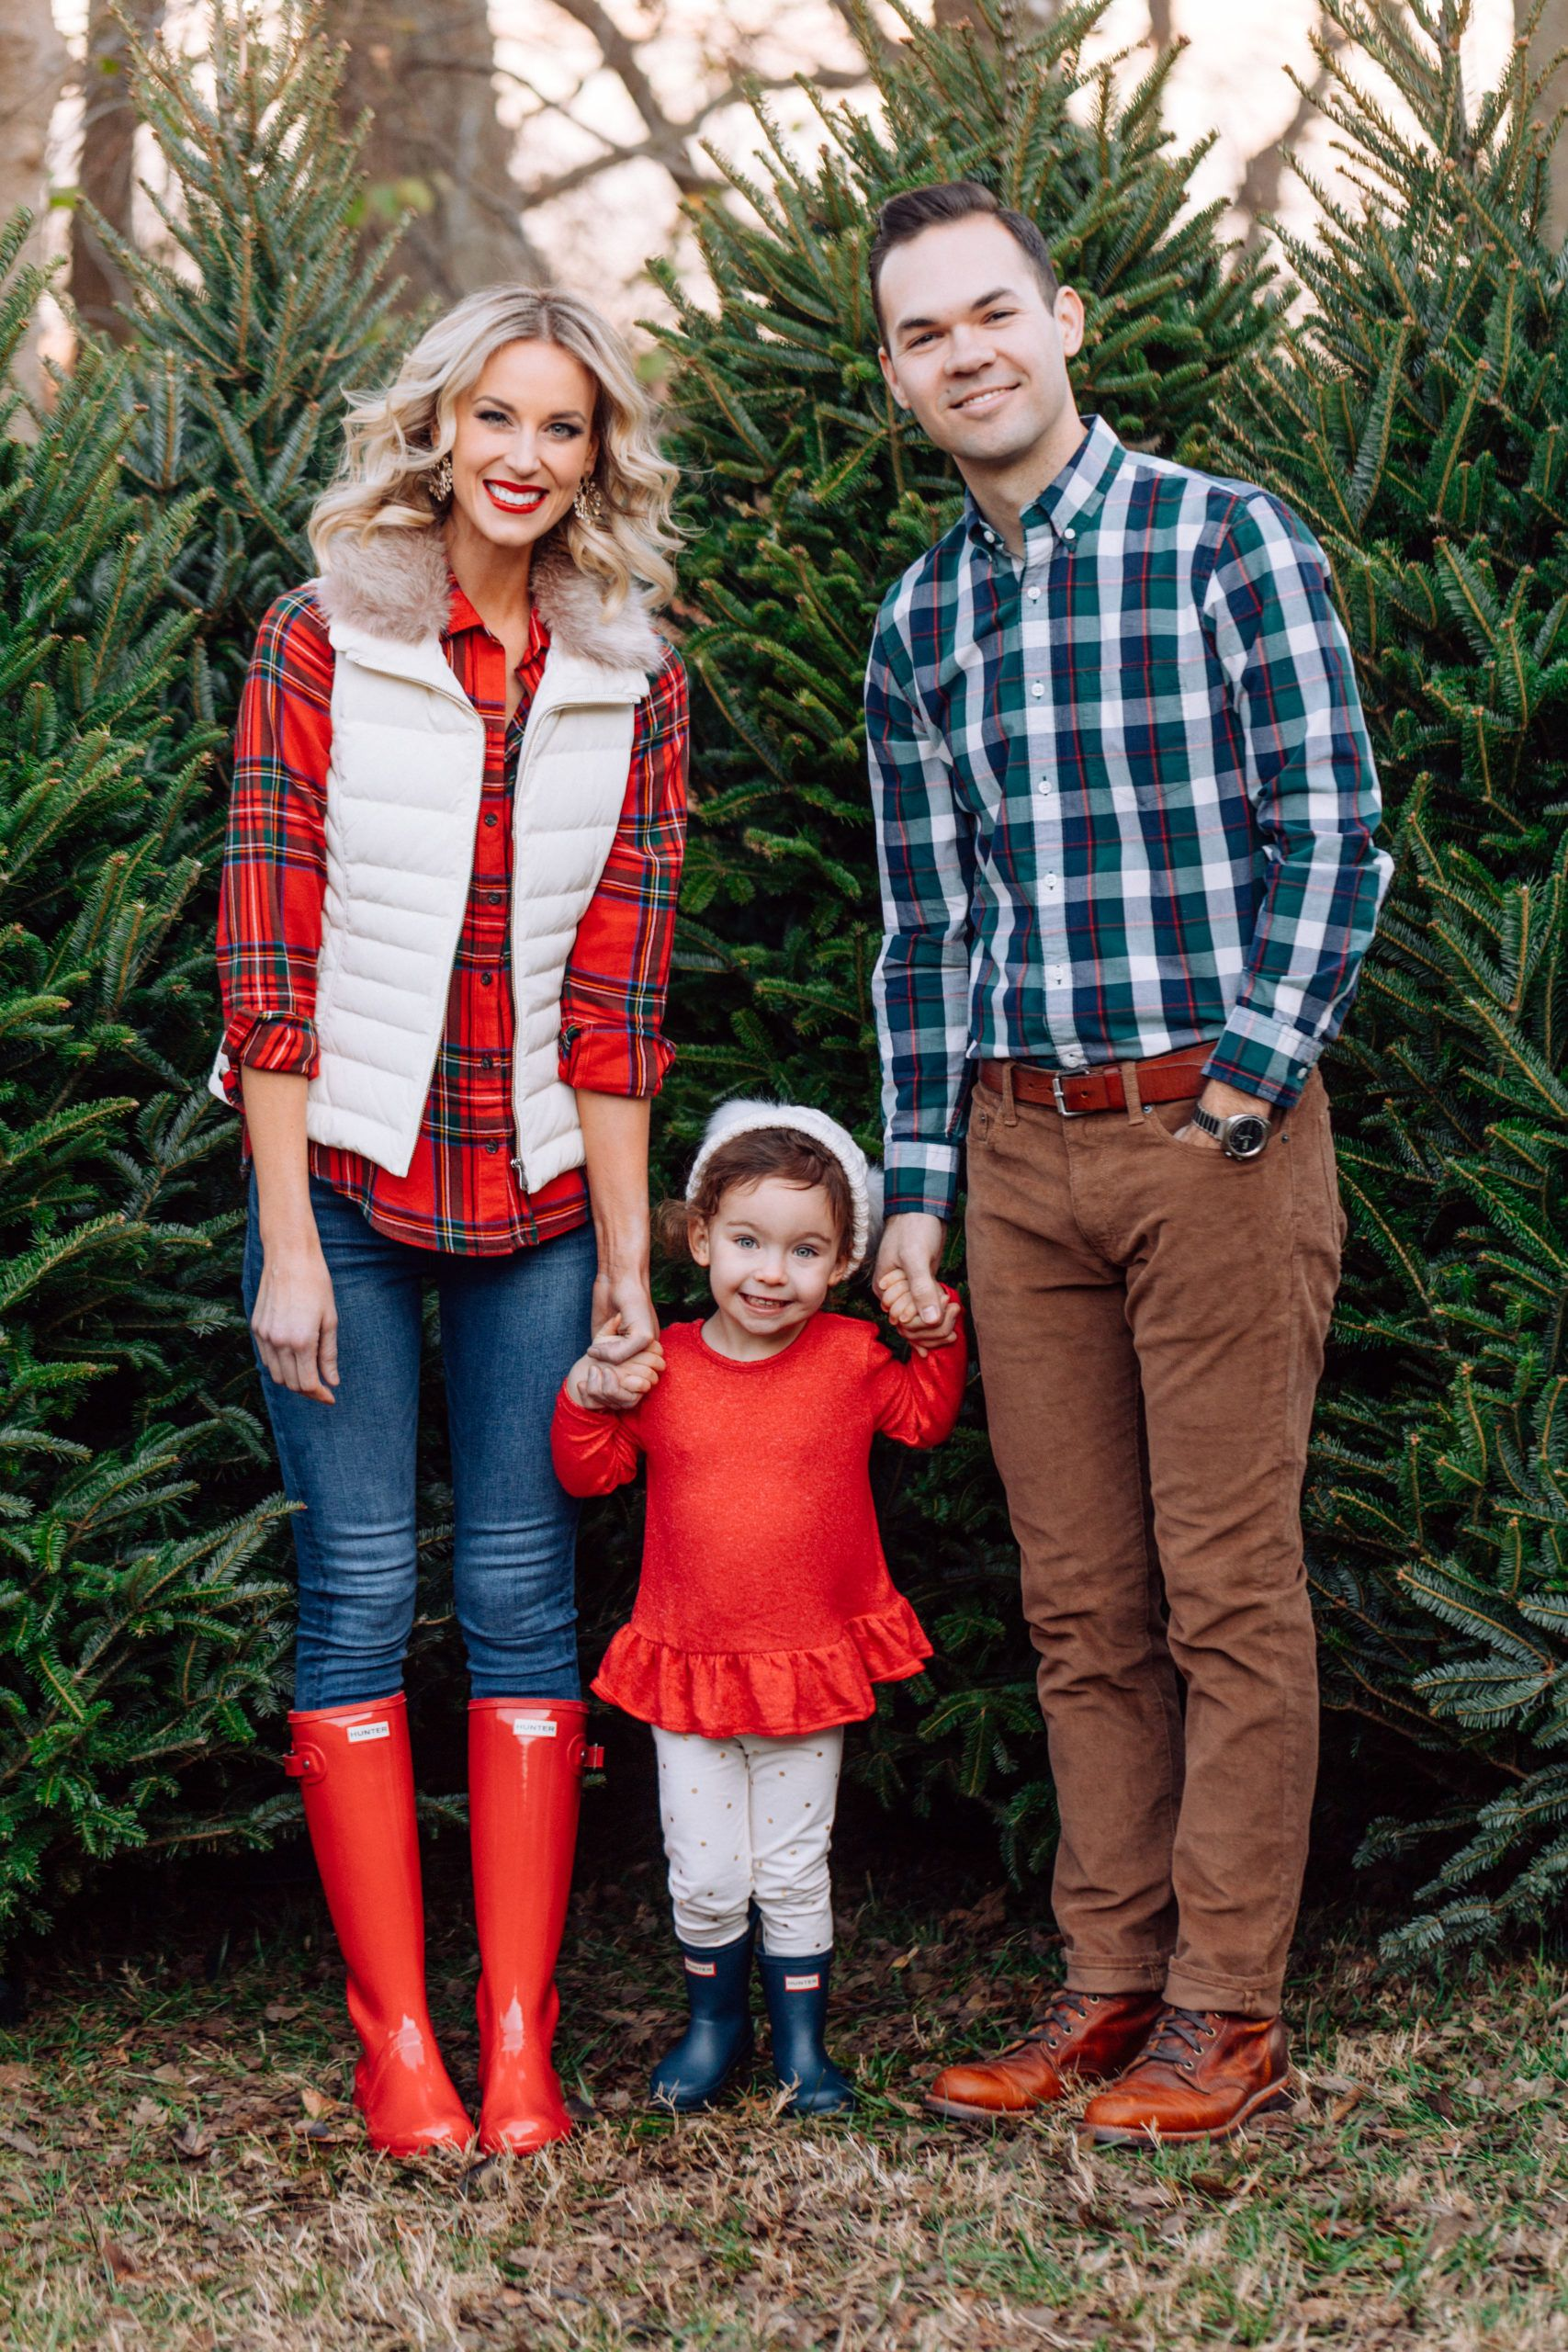 What To Wear For Family Christmas Tree Farm Photos Straight A Style Family Photo Outfits Winter Christmas Tree Farm Photos Family Christmas Outfits